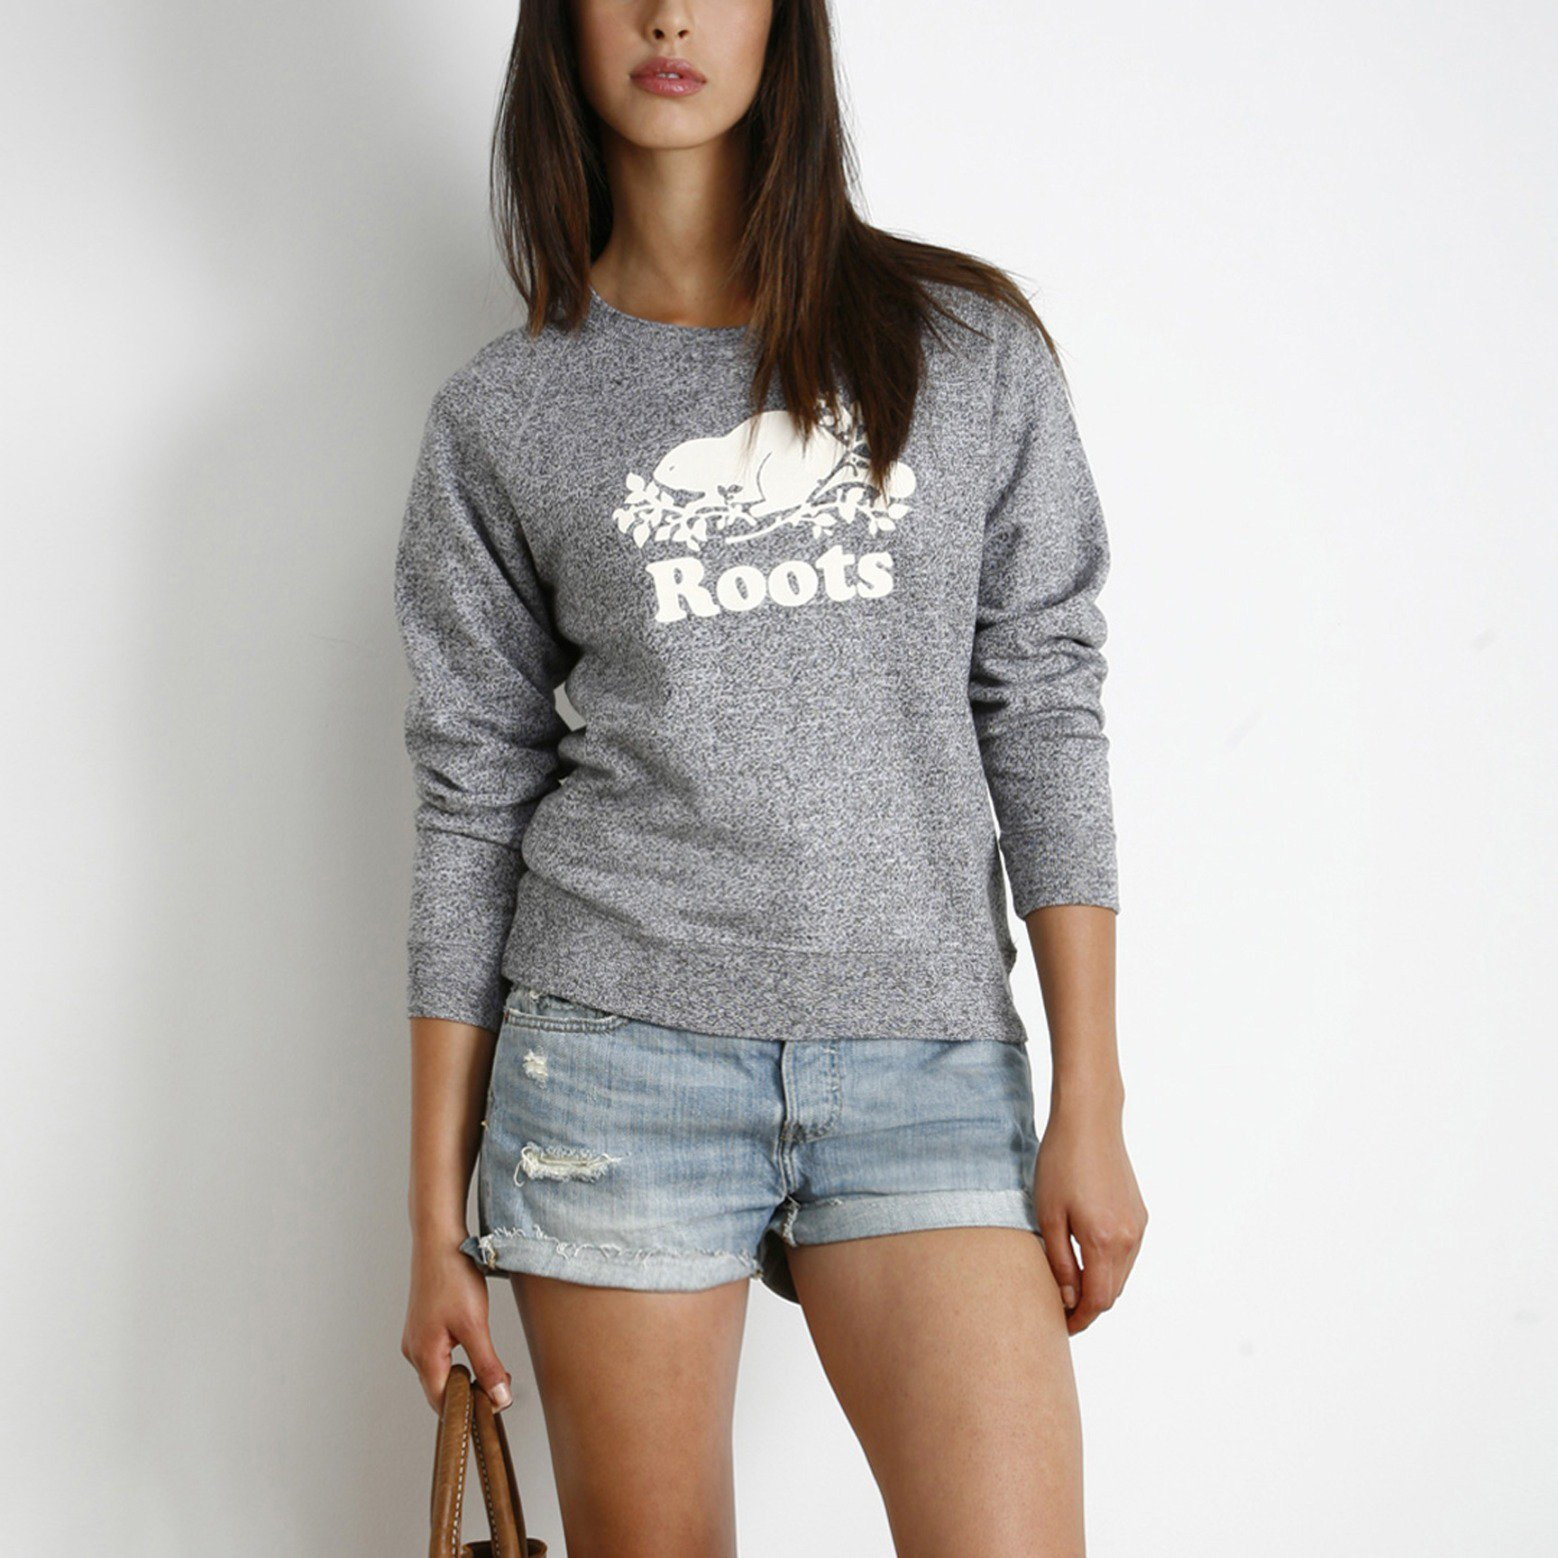 World Famous Crew | Womenu0026#39;s Tops from Roots | Clothes